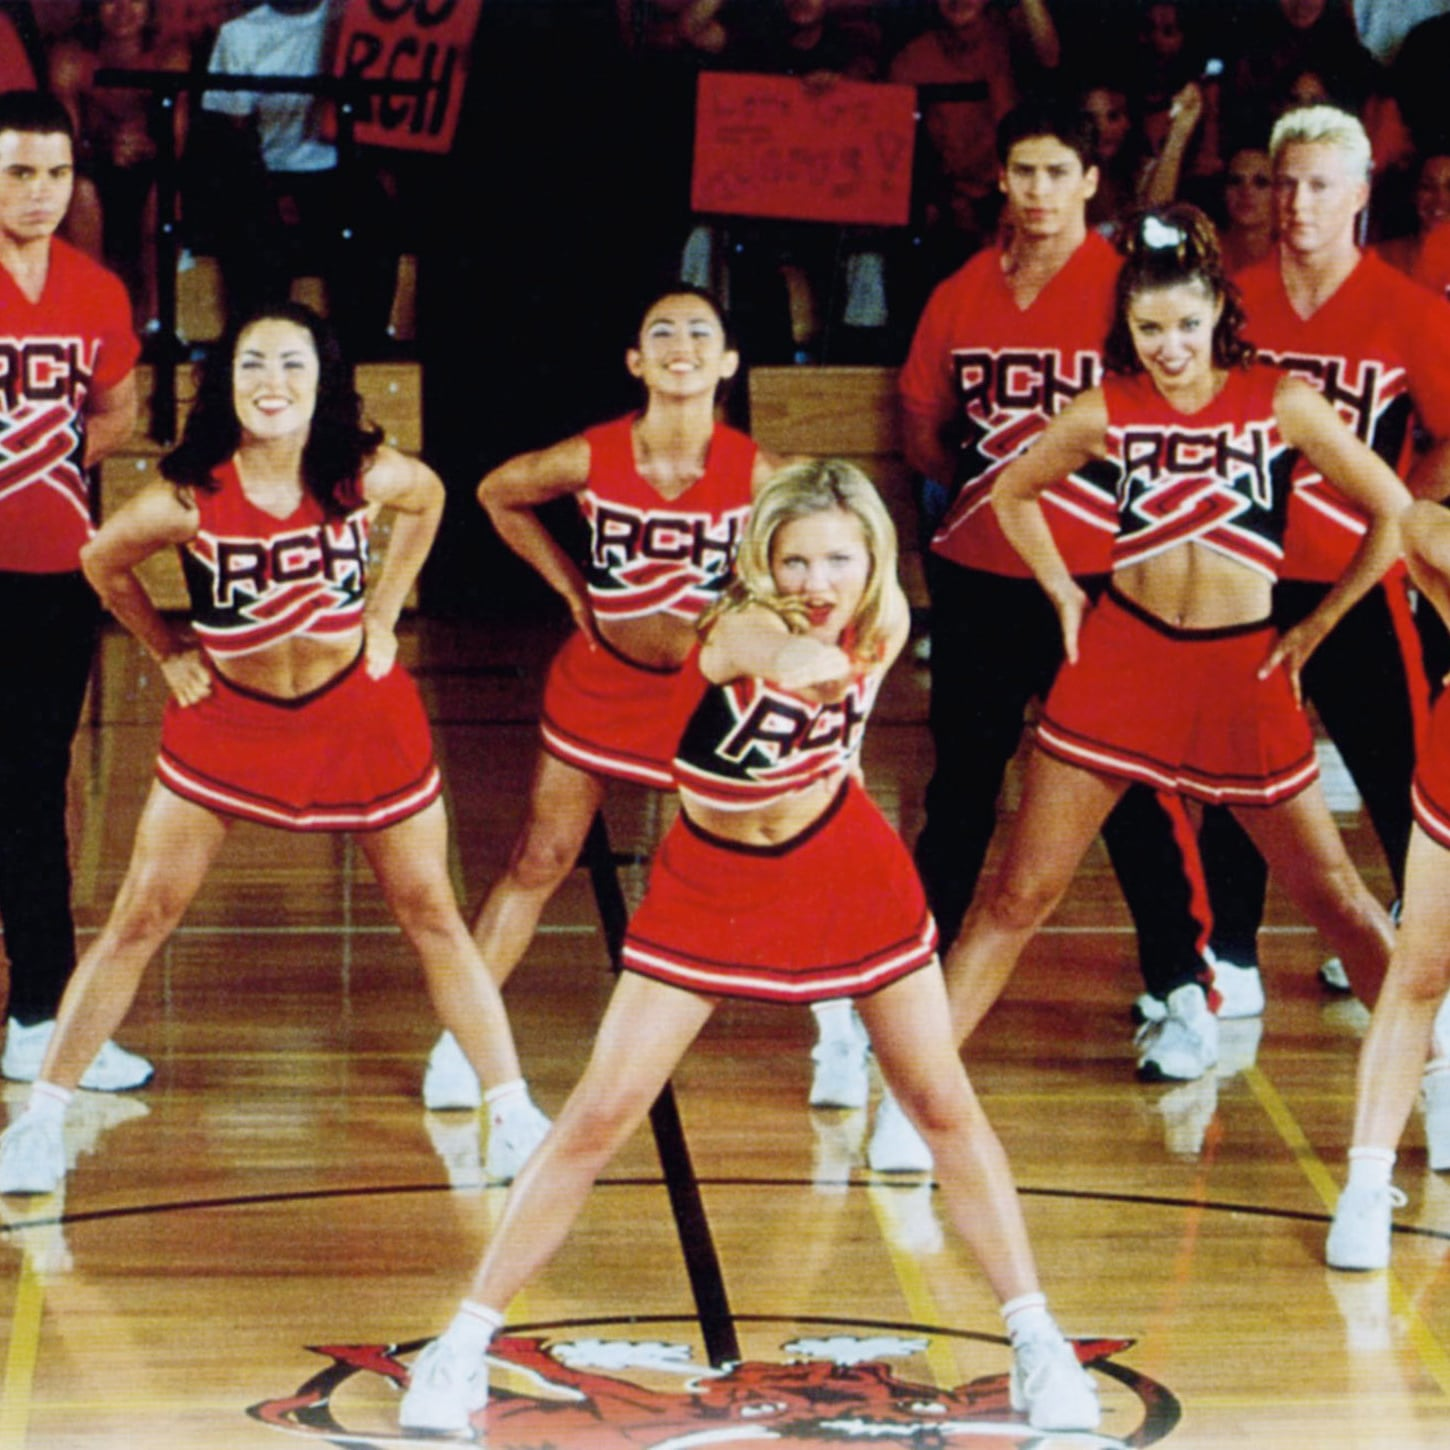 The Best Movies and TV Shows About Cheerleading | POPSUGAR Entertainment